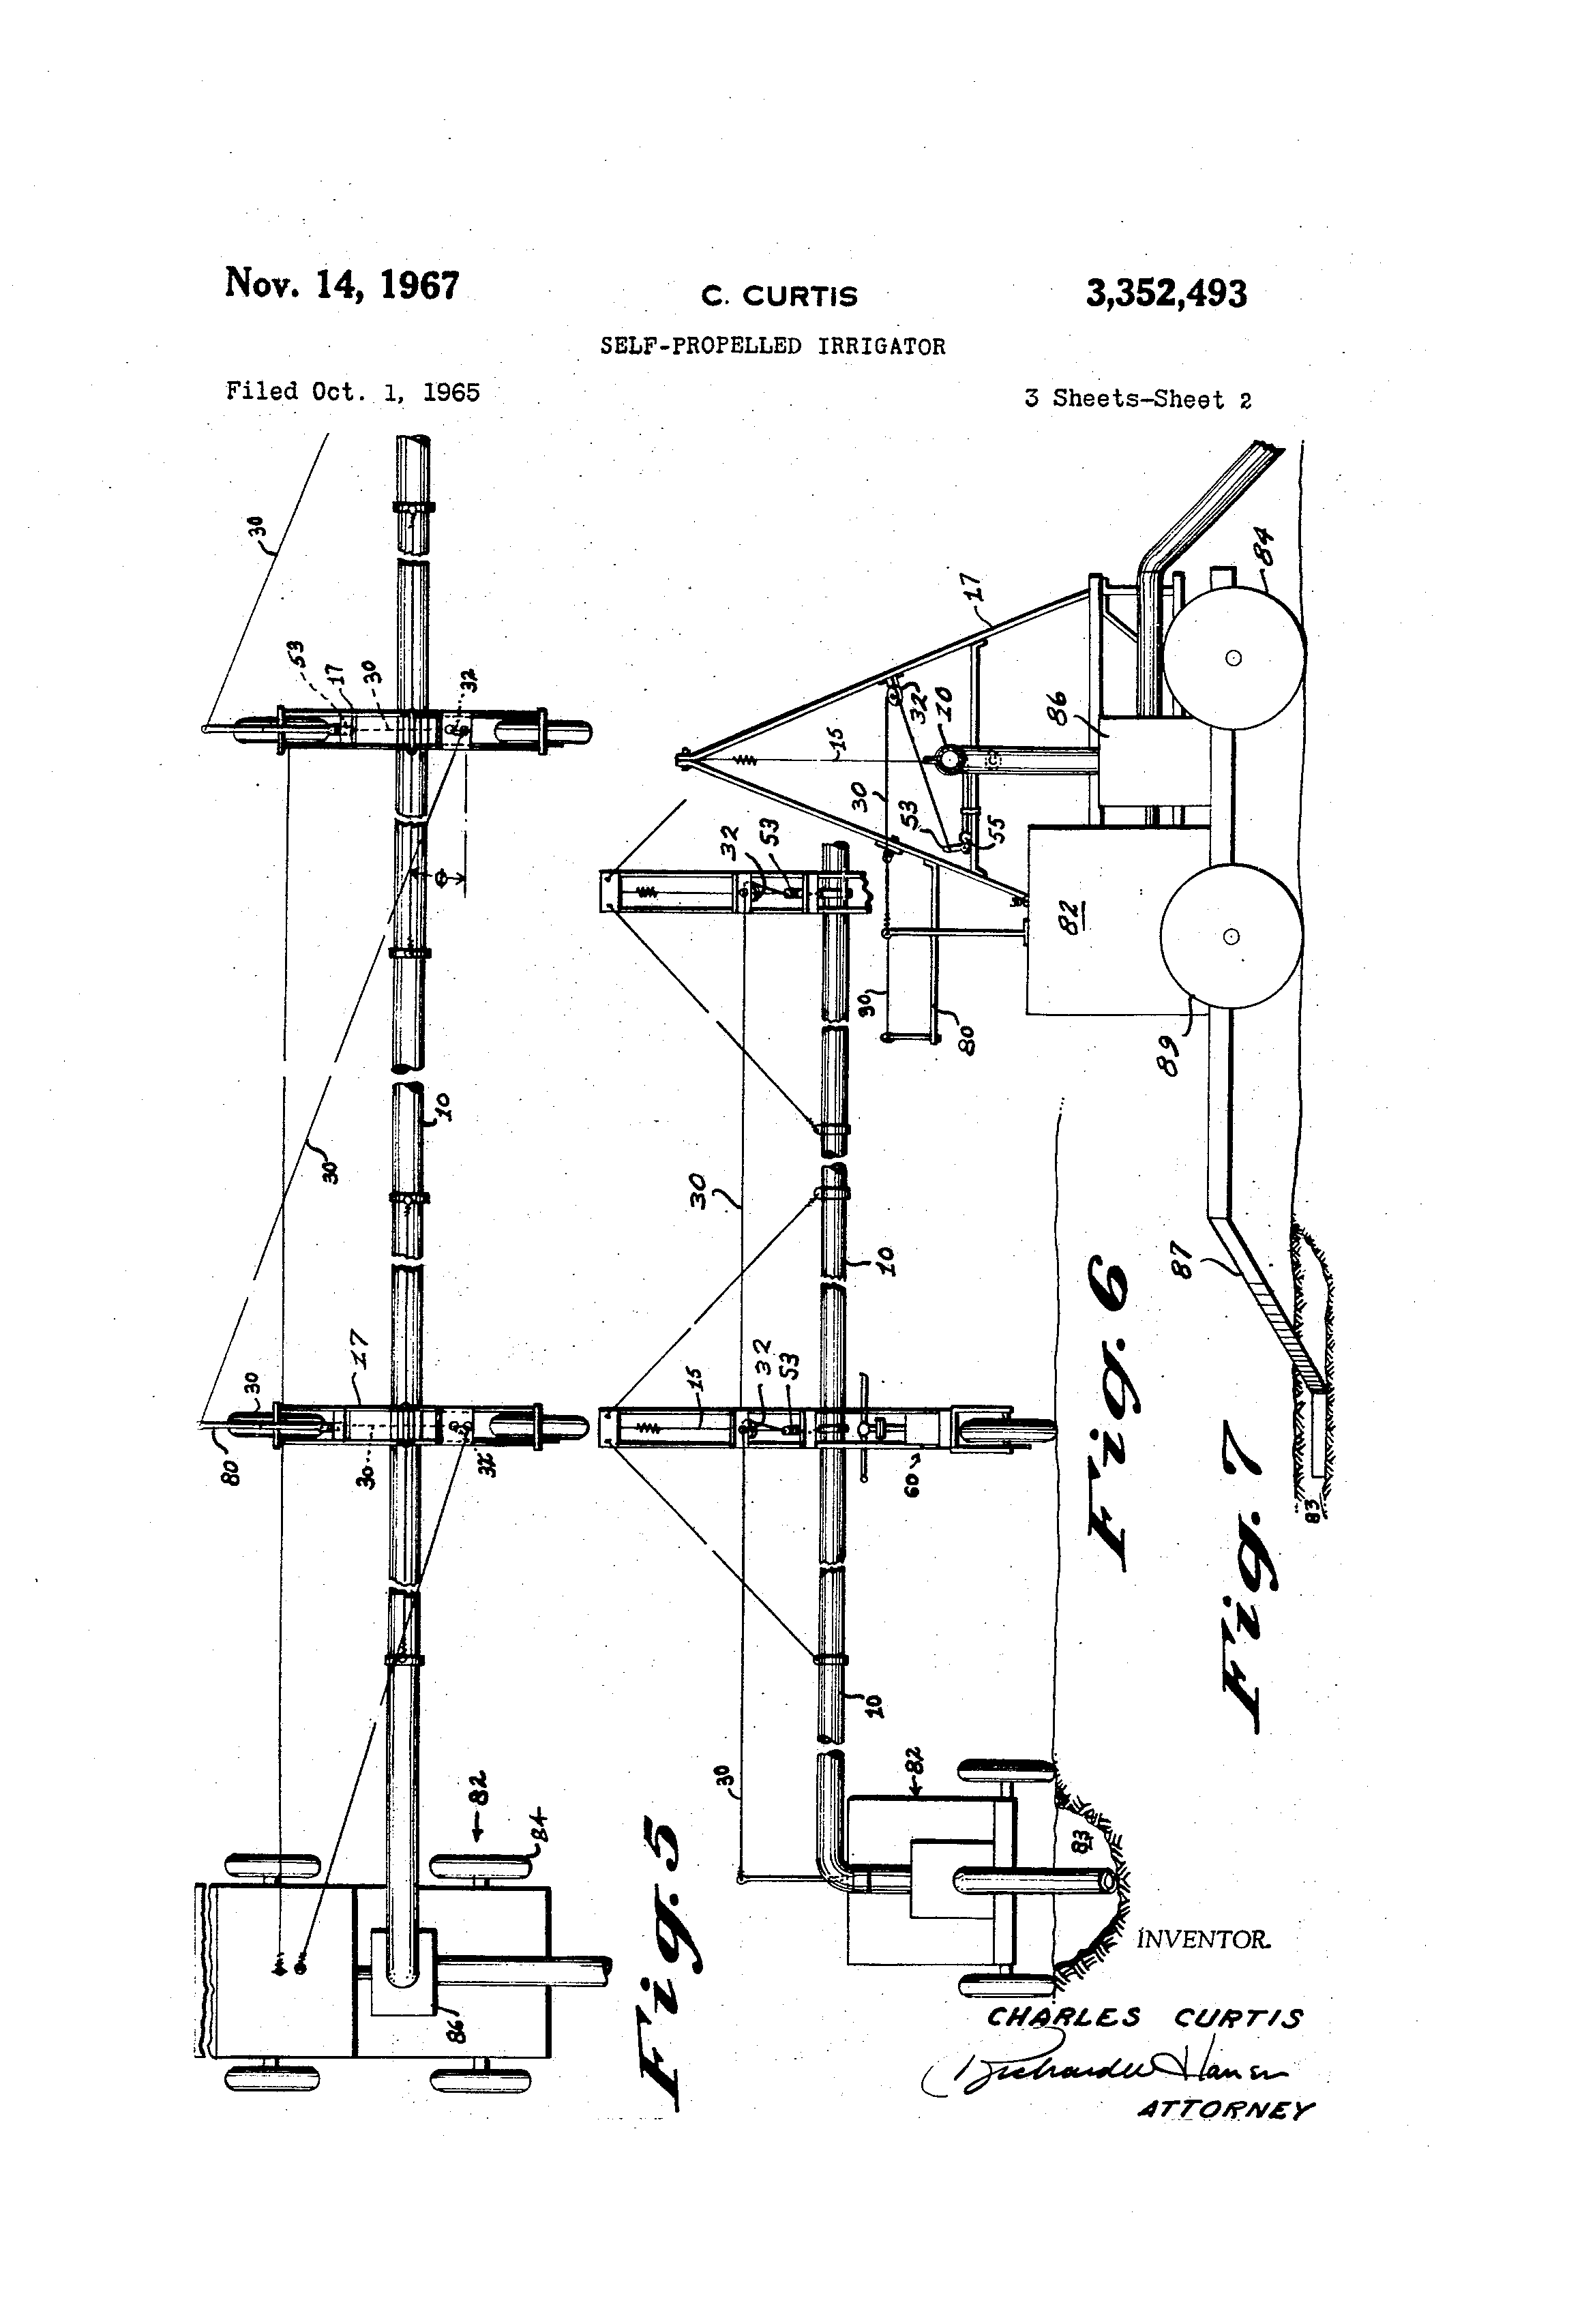 reinke wiring diagram first tower box   37 wiring diagram